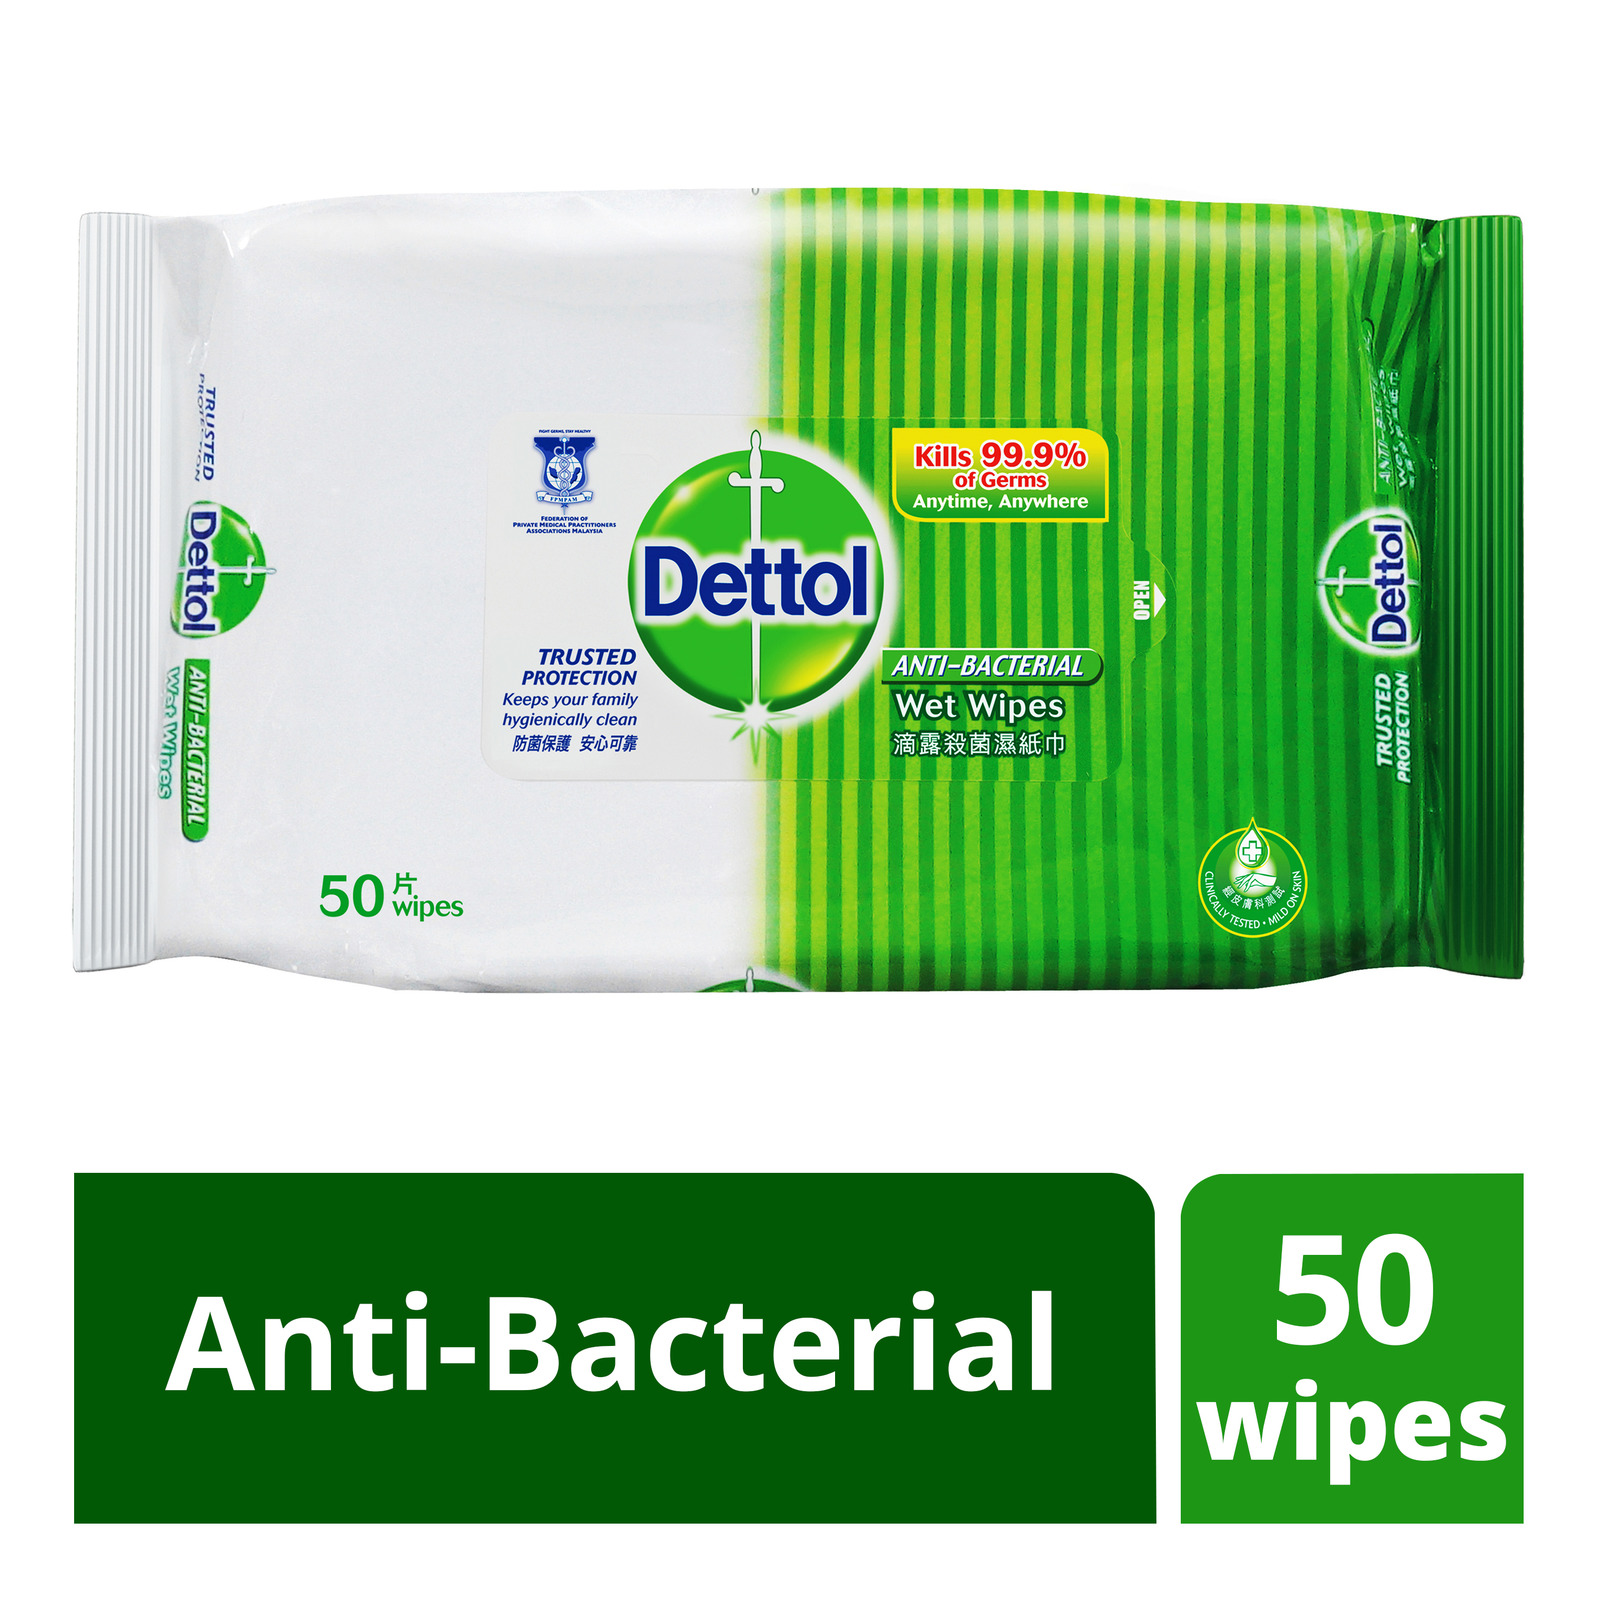 Dettol Anti-Bacterial Personal Wet Wipes